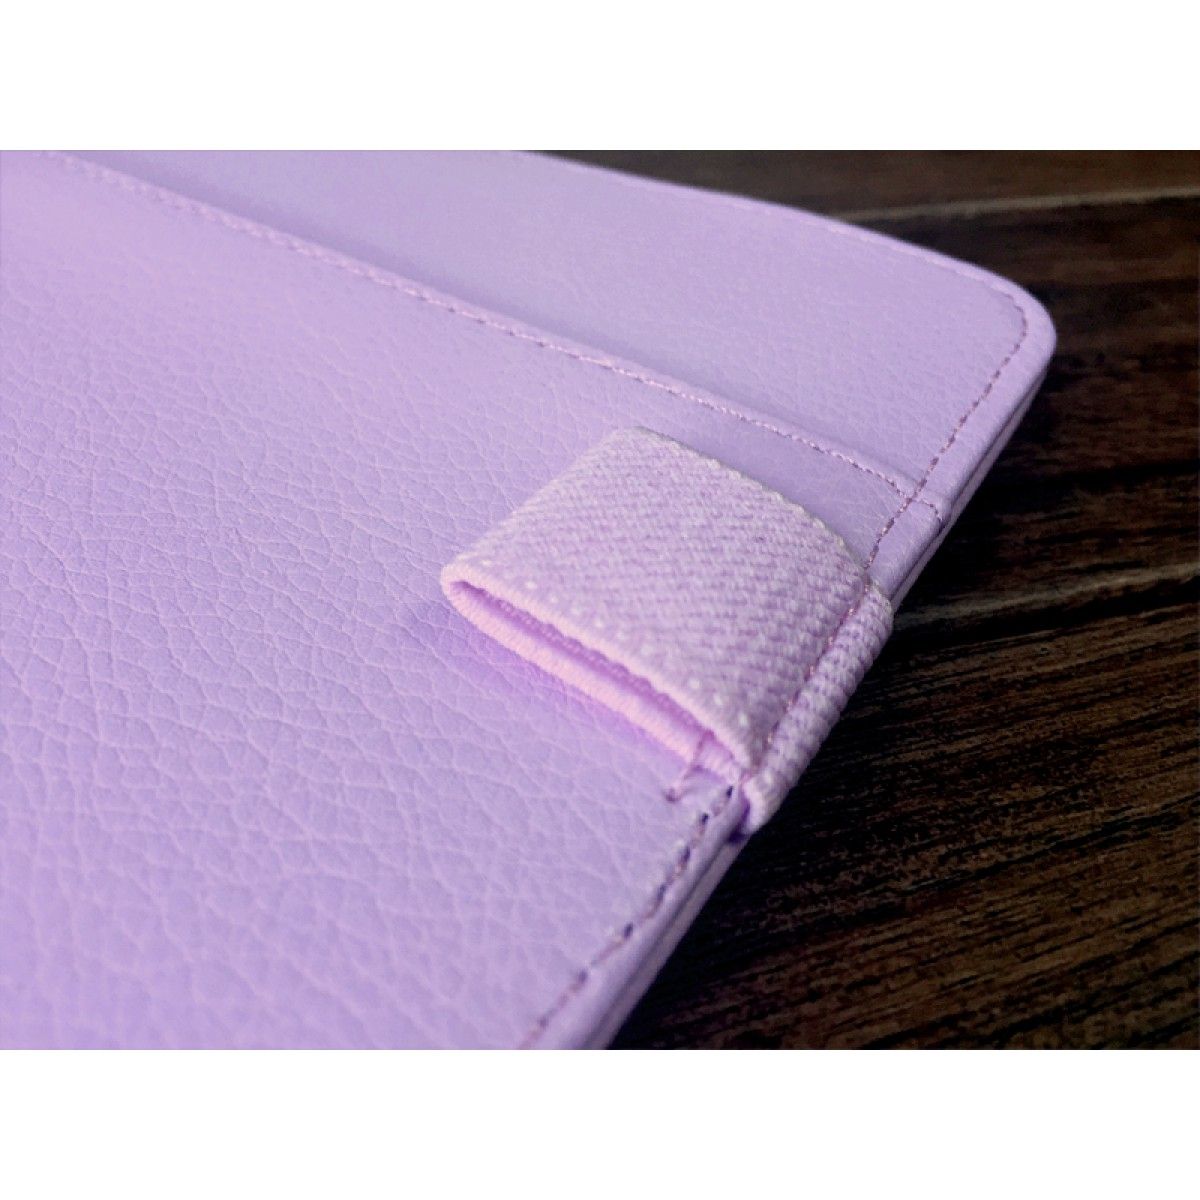 [Minor Flaw] DOKIBOOK LILAC WITH SNAP BUTTON SMALL